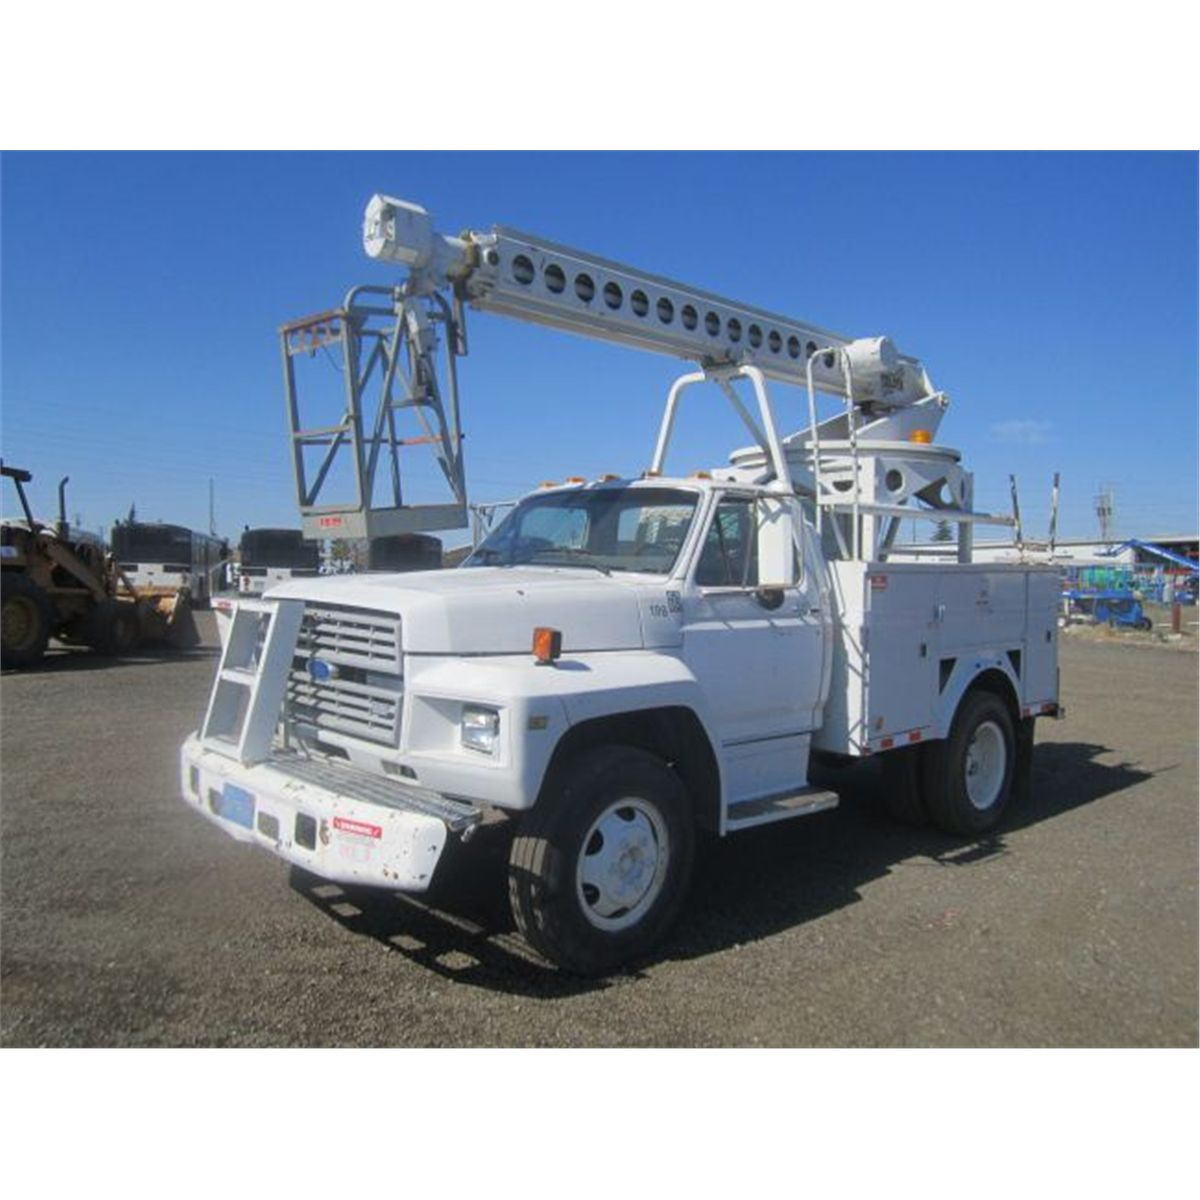 1986 Ford F600 S/A Bucket Truck